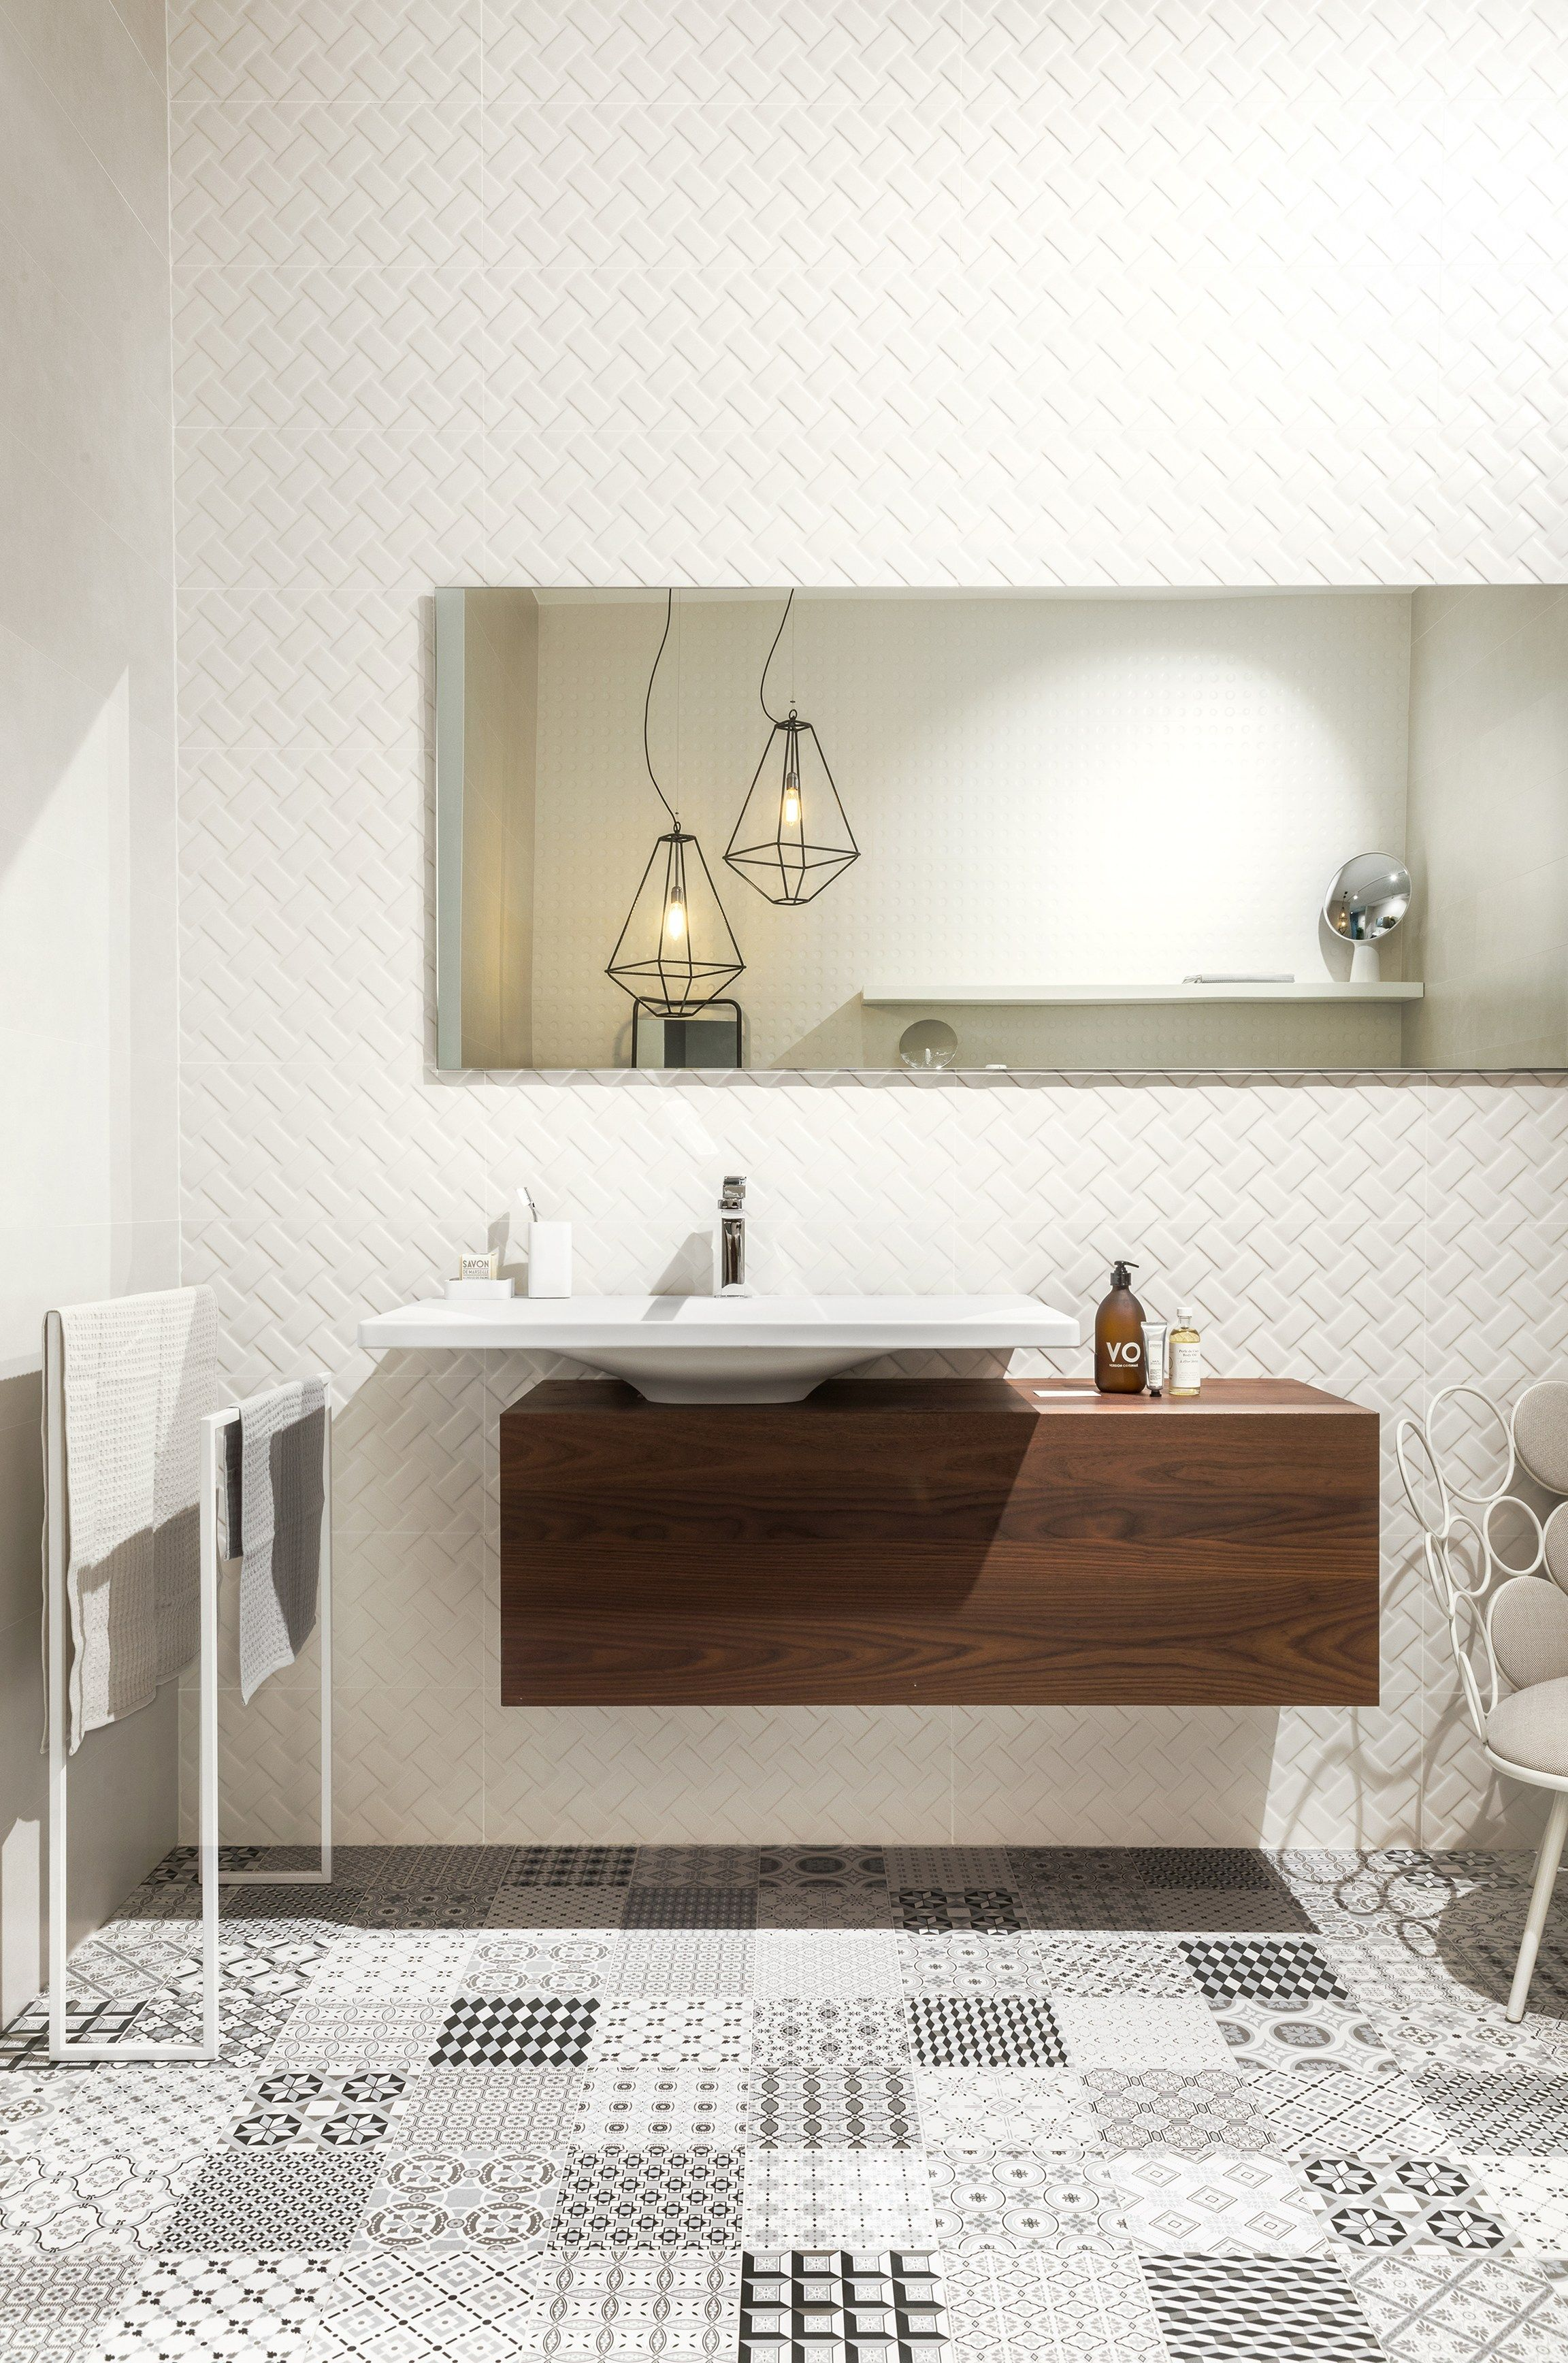 White-paste wall tiles METROCHIC - @sant_agostino | Bathroom ...